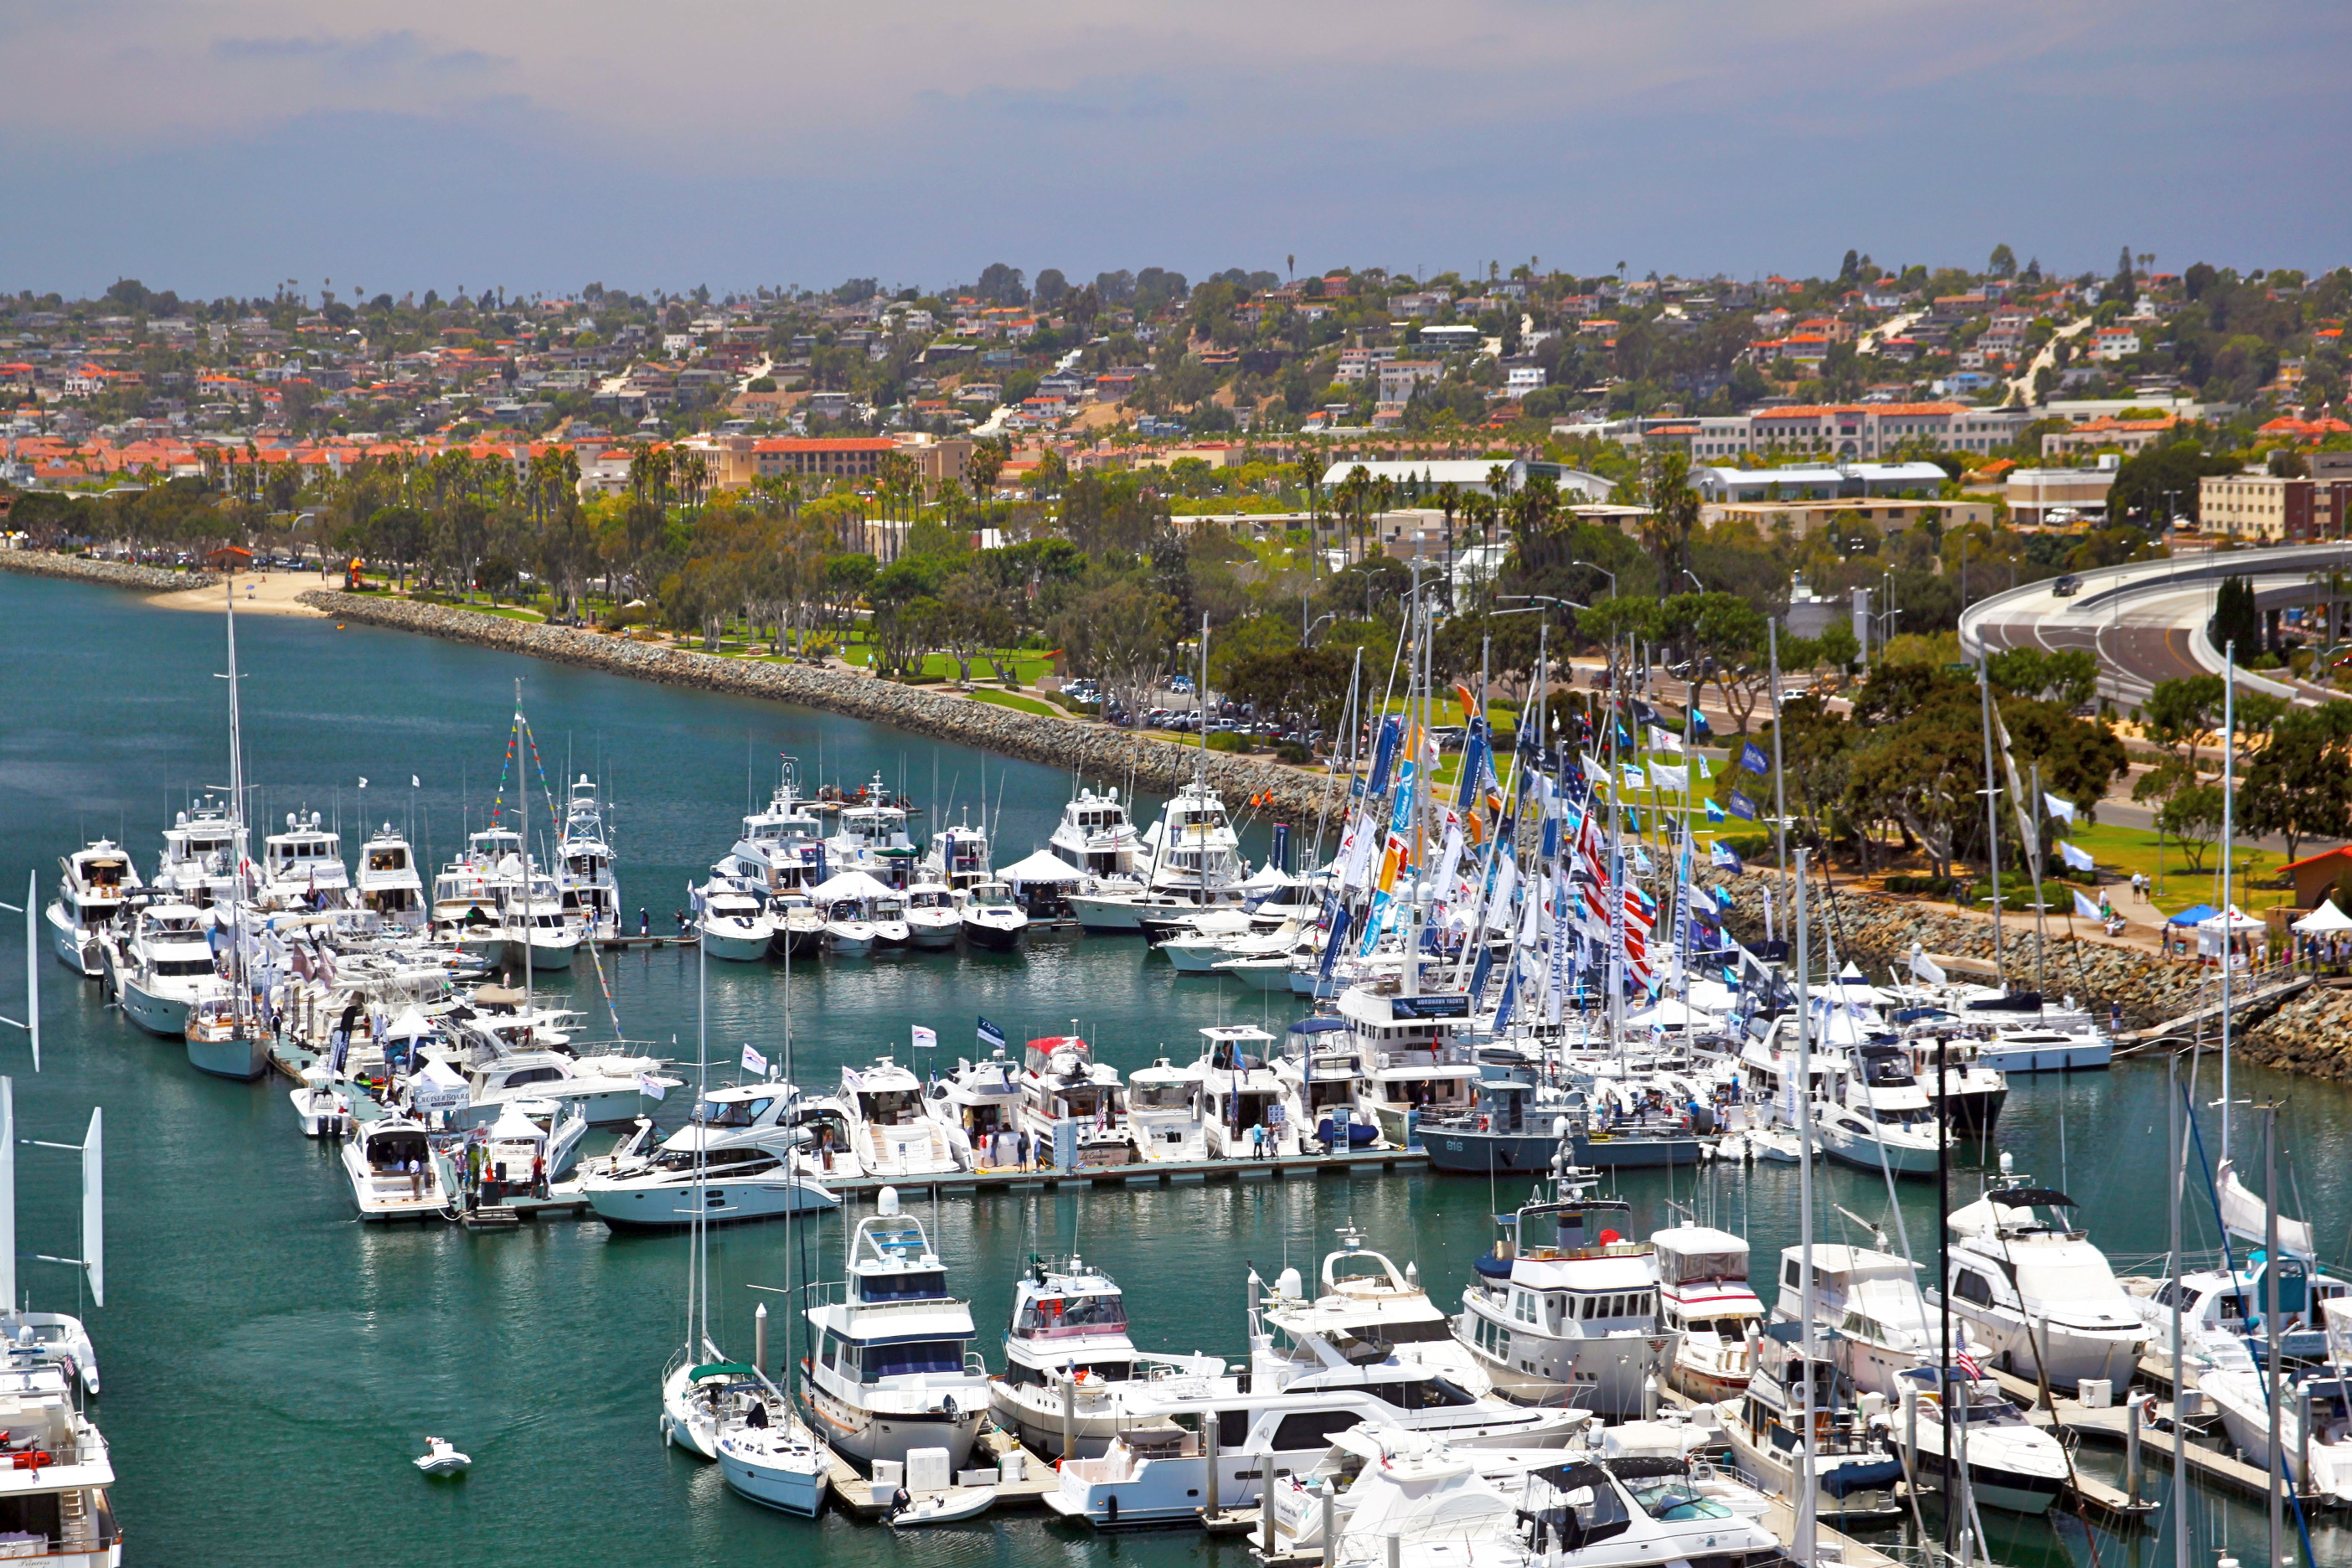 The boat show will be held at the Sheraton Marina on Harbor Island.